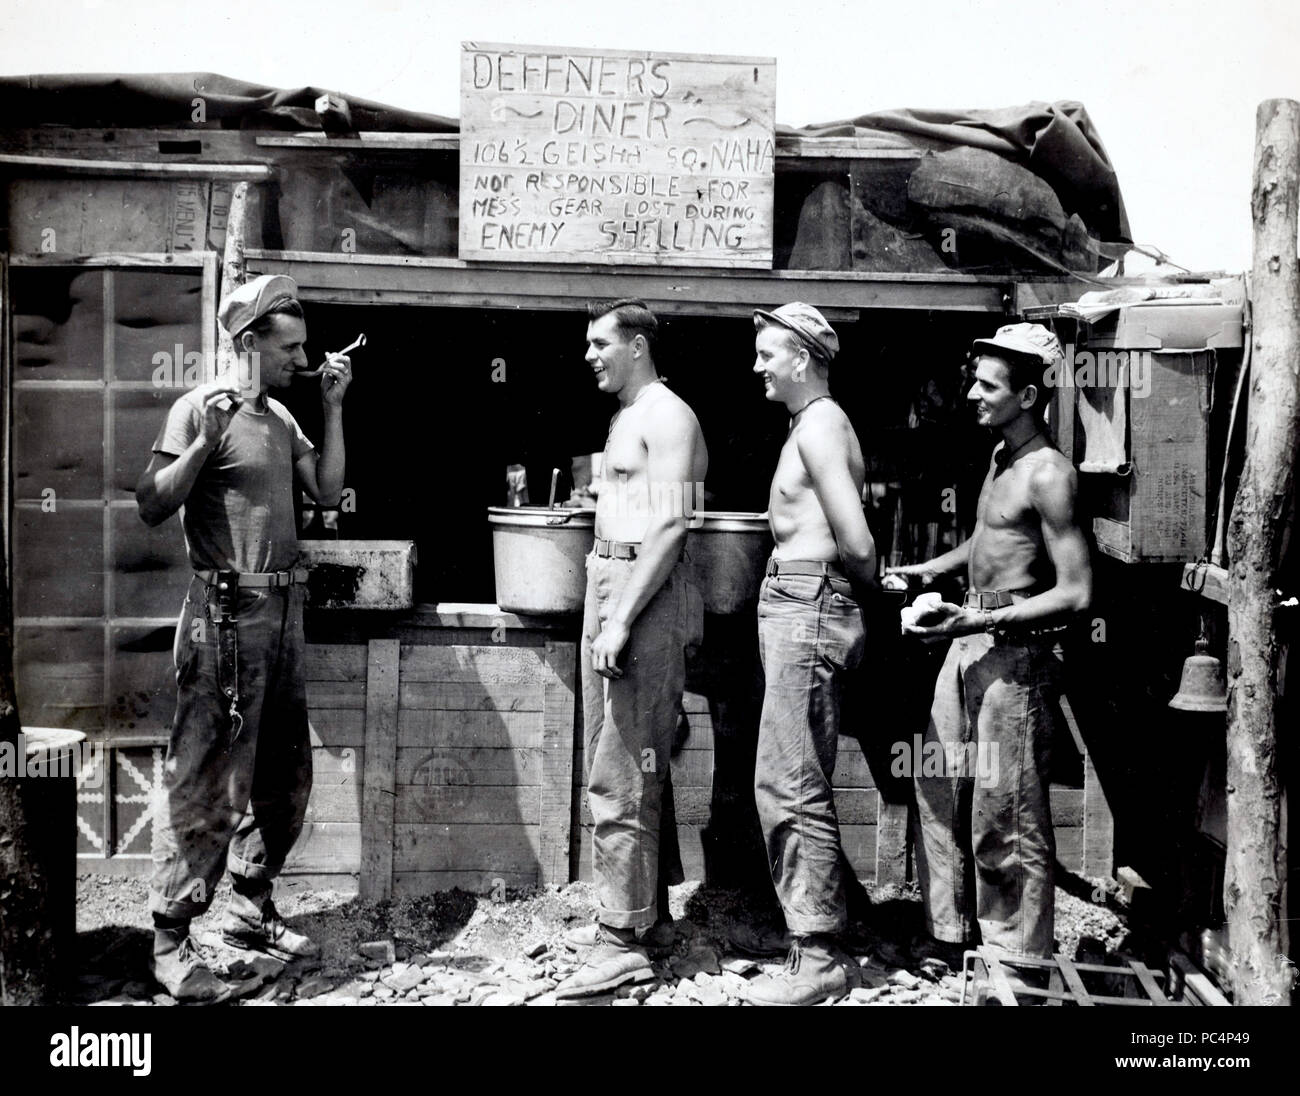 Mess Sgt Corporal Nelson Deffner tastes his own chow and shows his sense of humor with a sign at mess hall on Okinawa - Stock Image